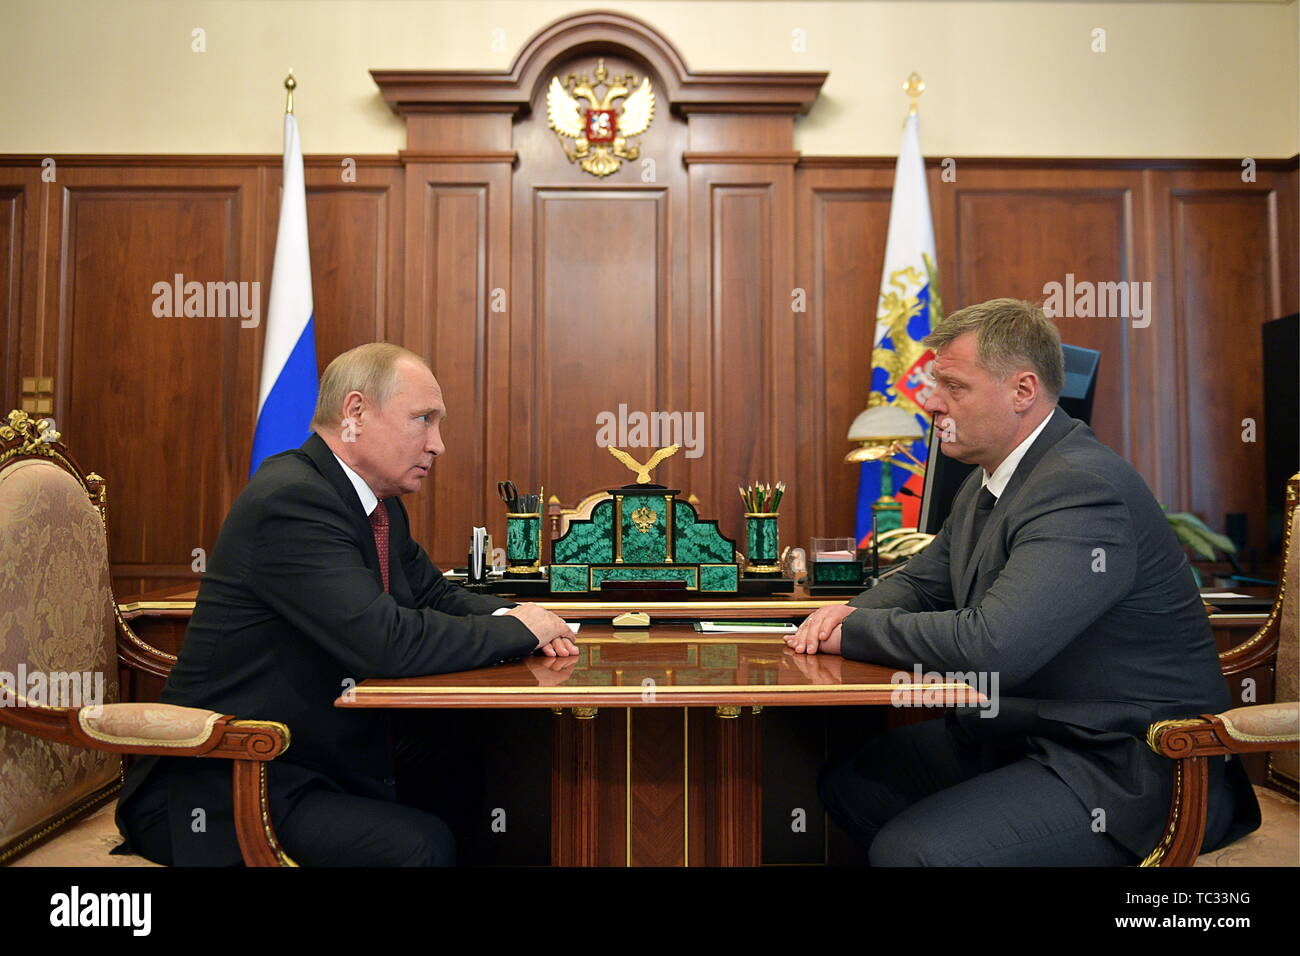 Moscow, Russia. 05th June, 2019. MOSCOW, RUSSIA - JUNE 5, 2019: The President of Russia Vladimir Putin (L) and the newly appointed acting governor of Astrakhan Region, Igor Babushkin, talk during a meeting in the Moscow Kremlin. Alexei Druzhinin/Russian Presidential Press and Information Office/TASS Credit: ITAR-TASS News Agency/Alamy Live News - Stock Image